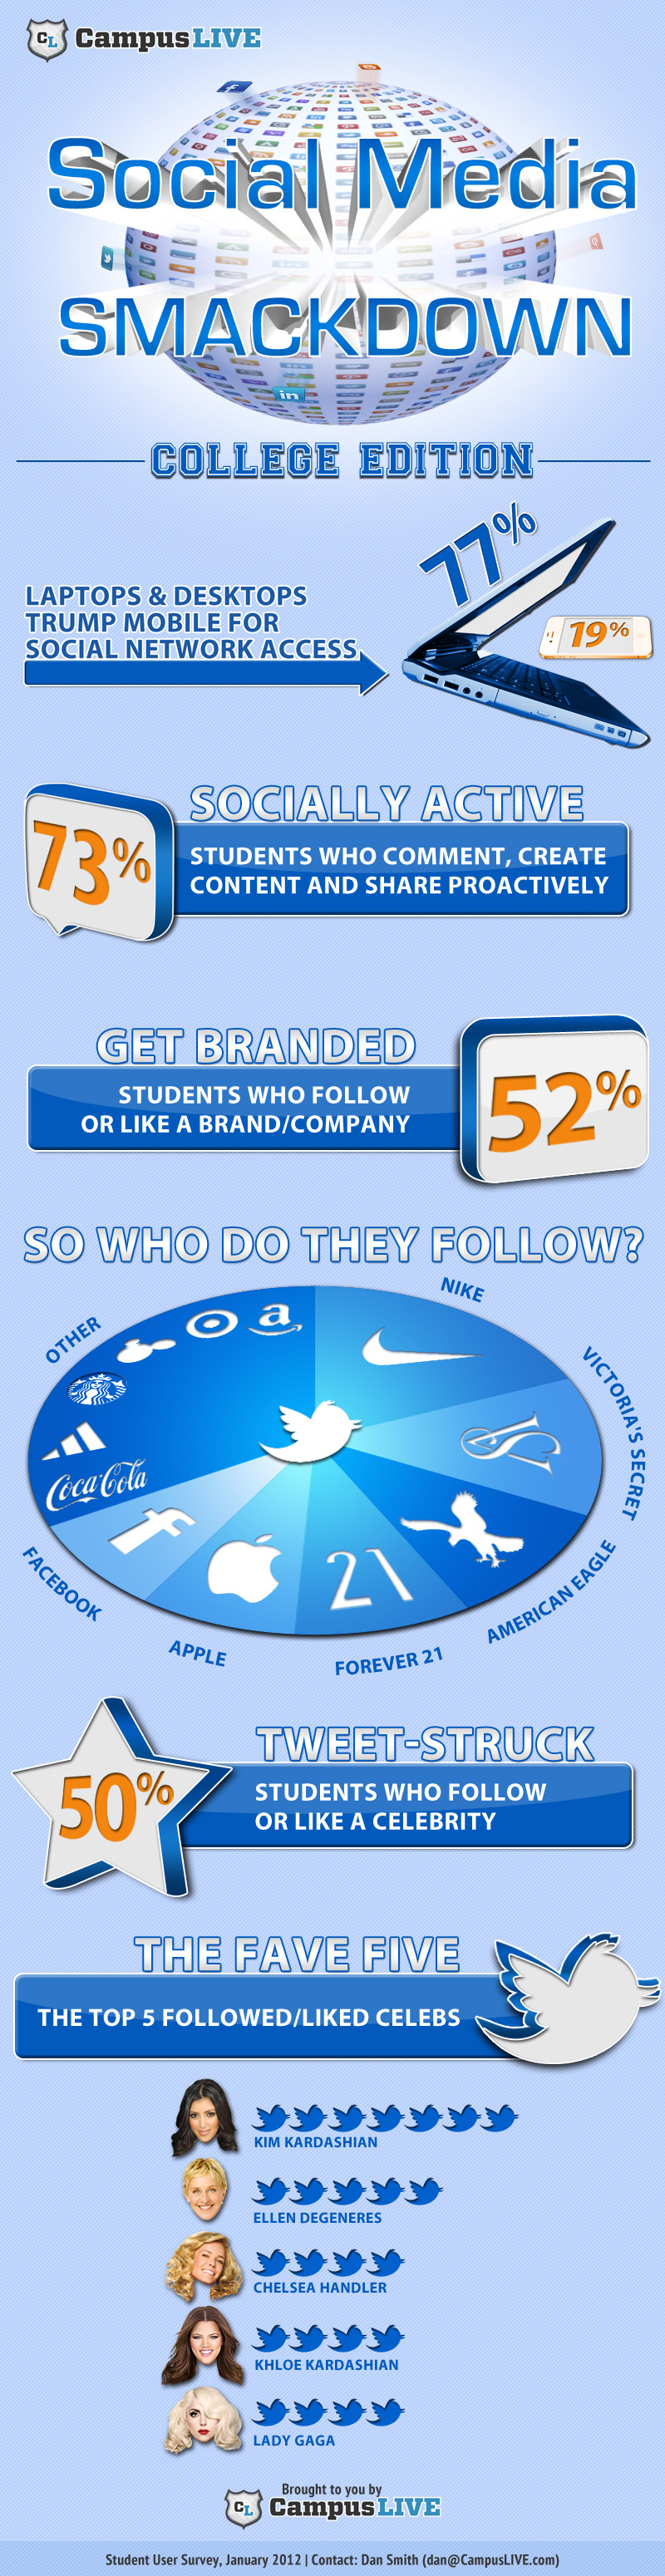 Social-Media-Smackdown-College-Edition-infographic